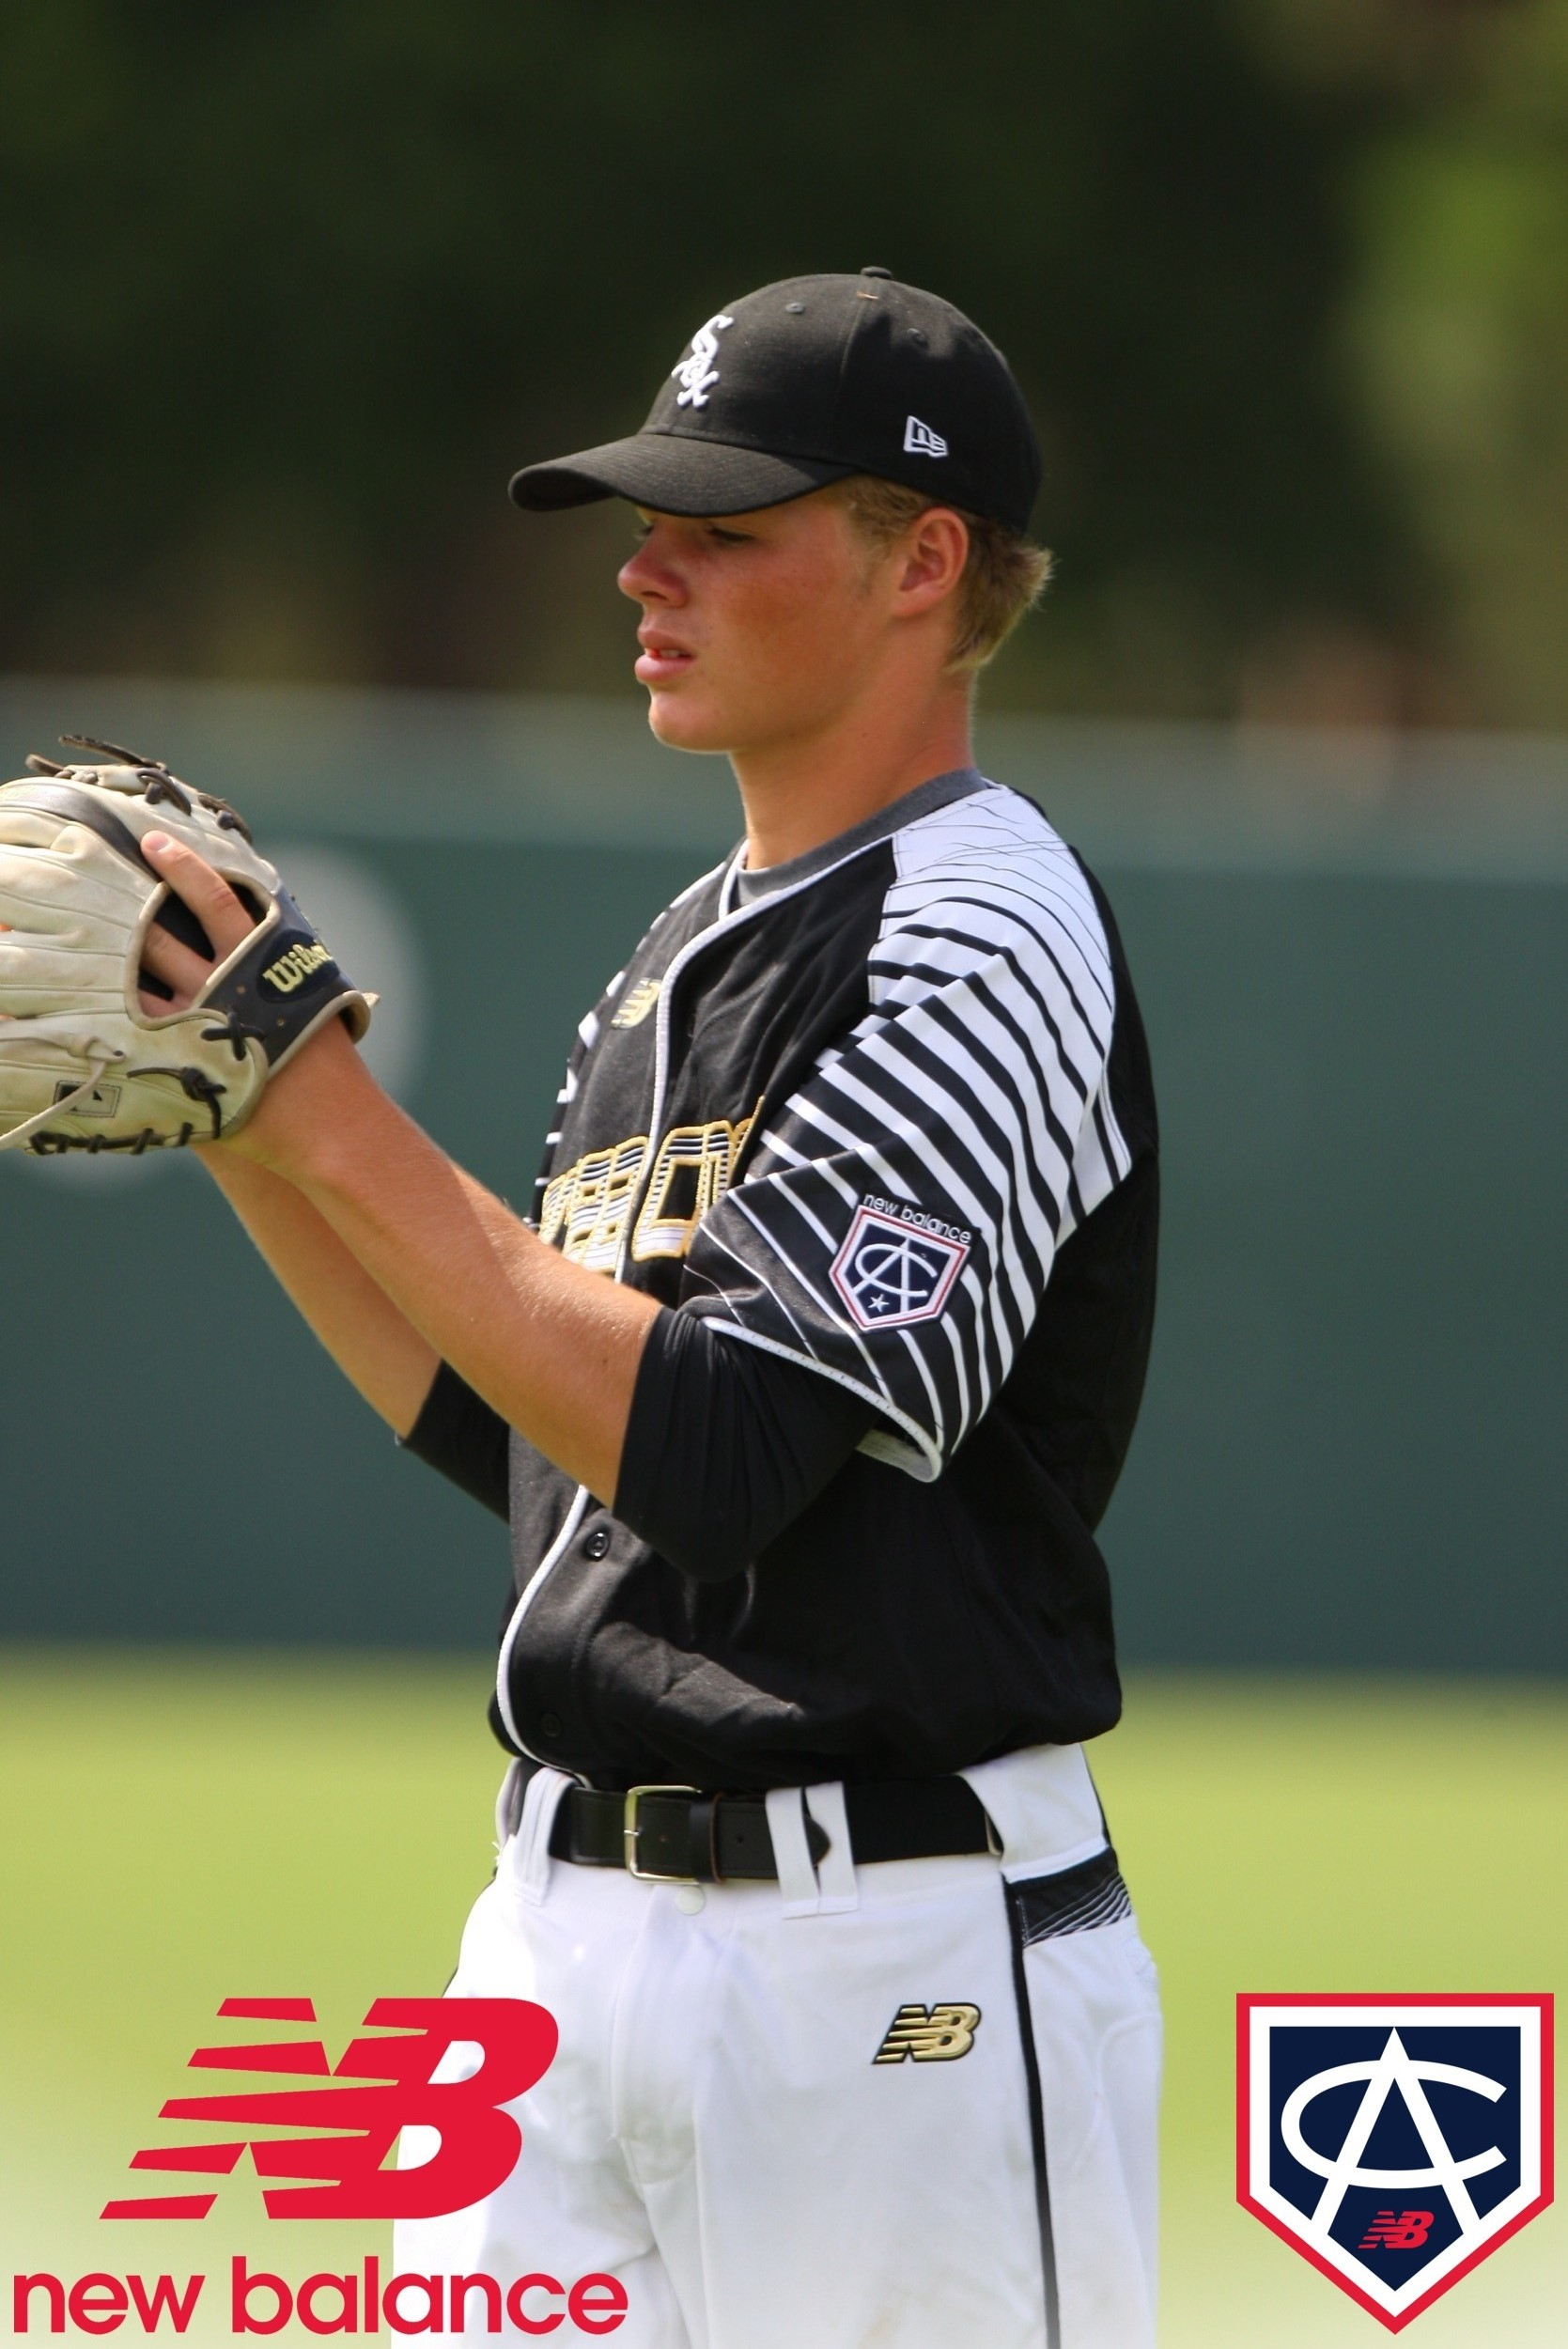 Gavin Lux at the 2015 New Balance Area Code Games in Long Beach, CA